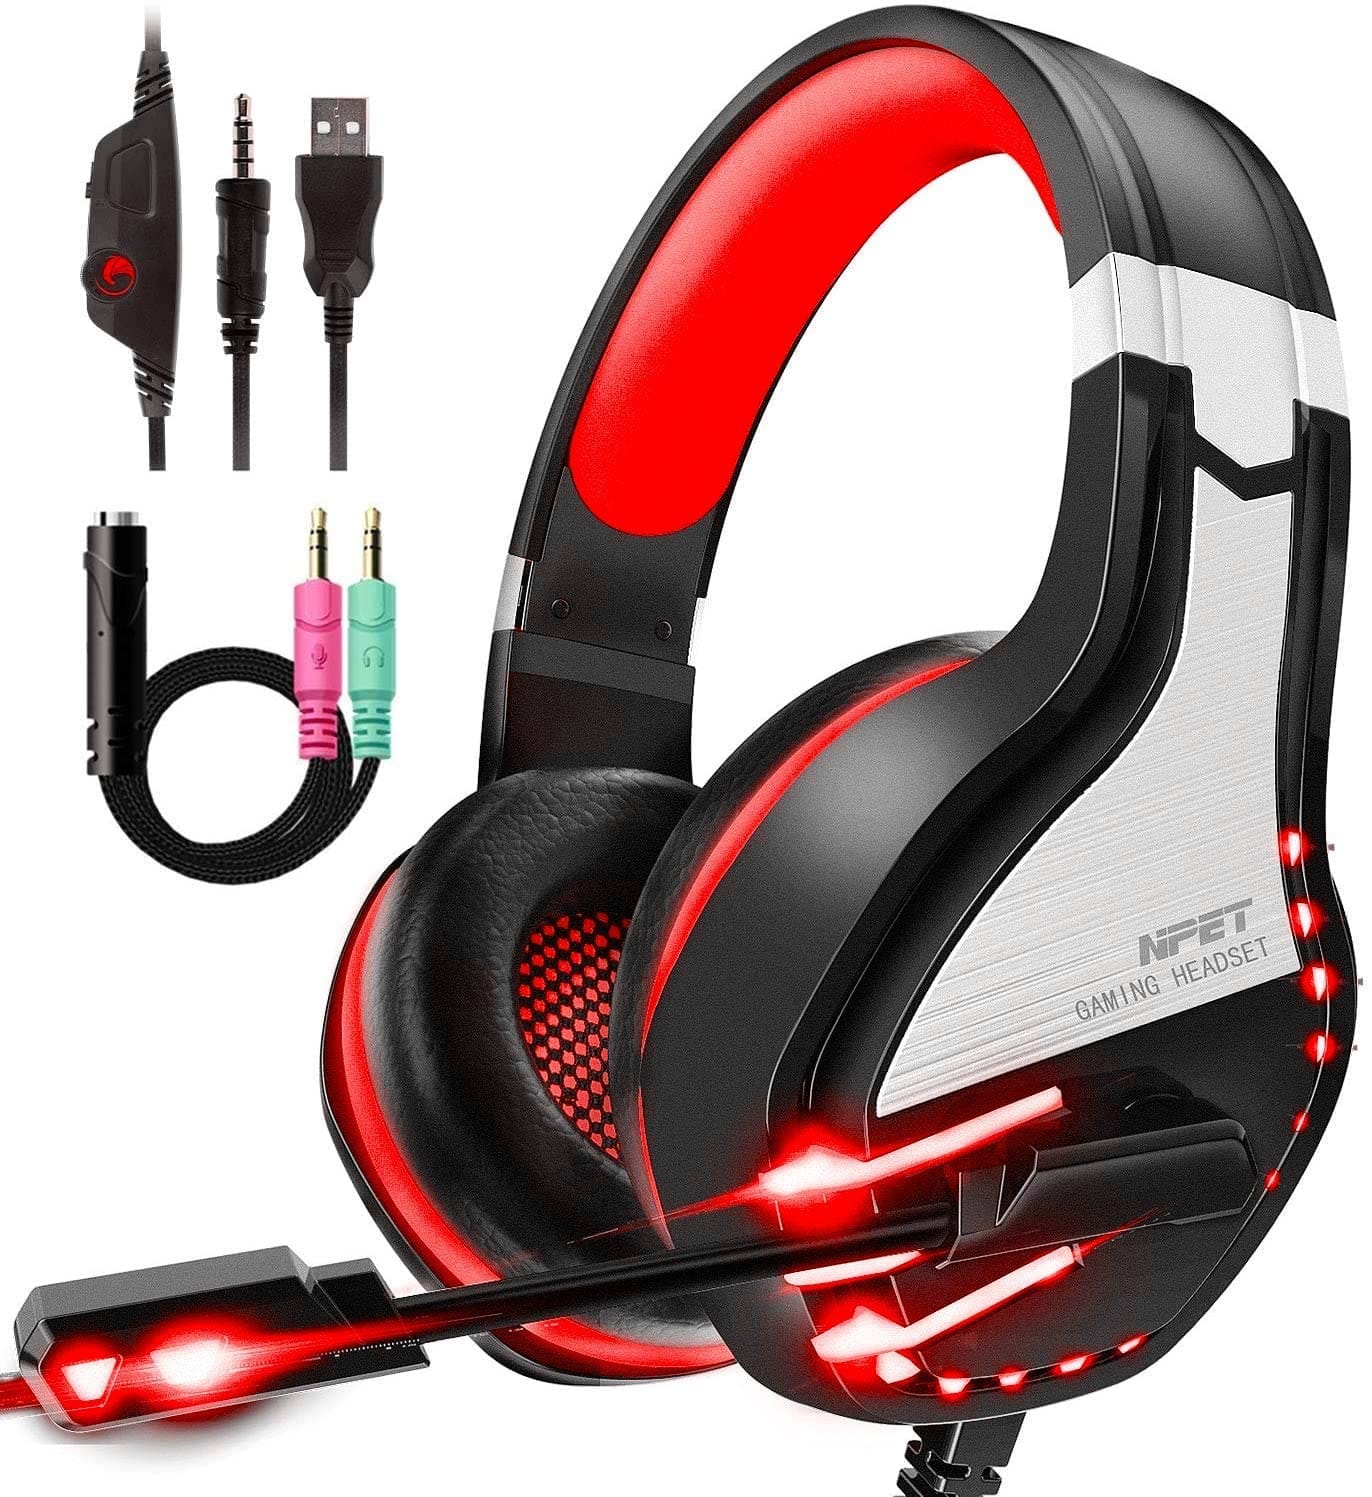 HS10 Stereo Gaming Headset for PS4, PC, Xbox One Controller $11.99 $11.99